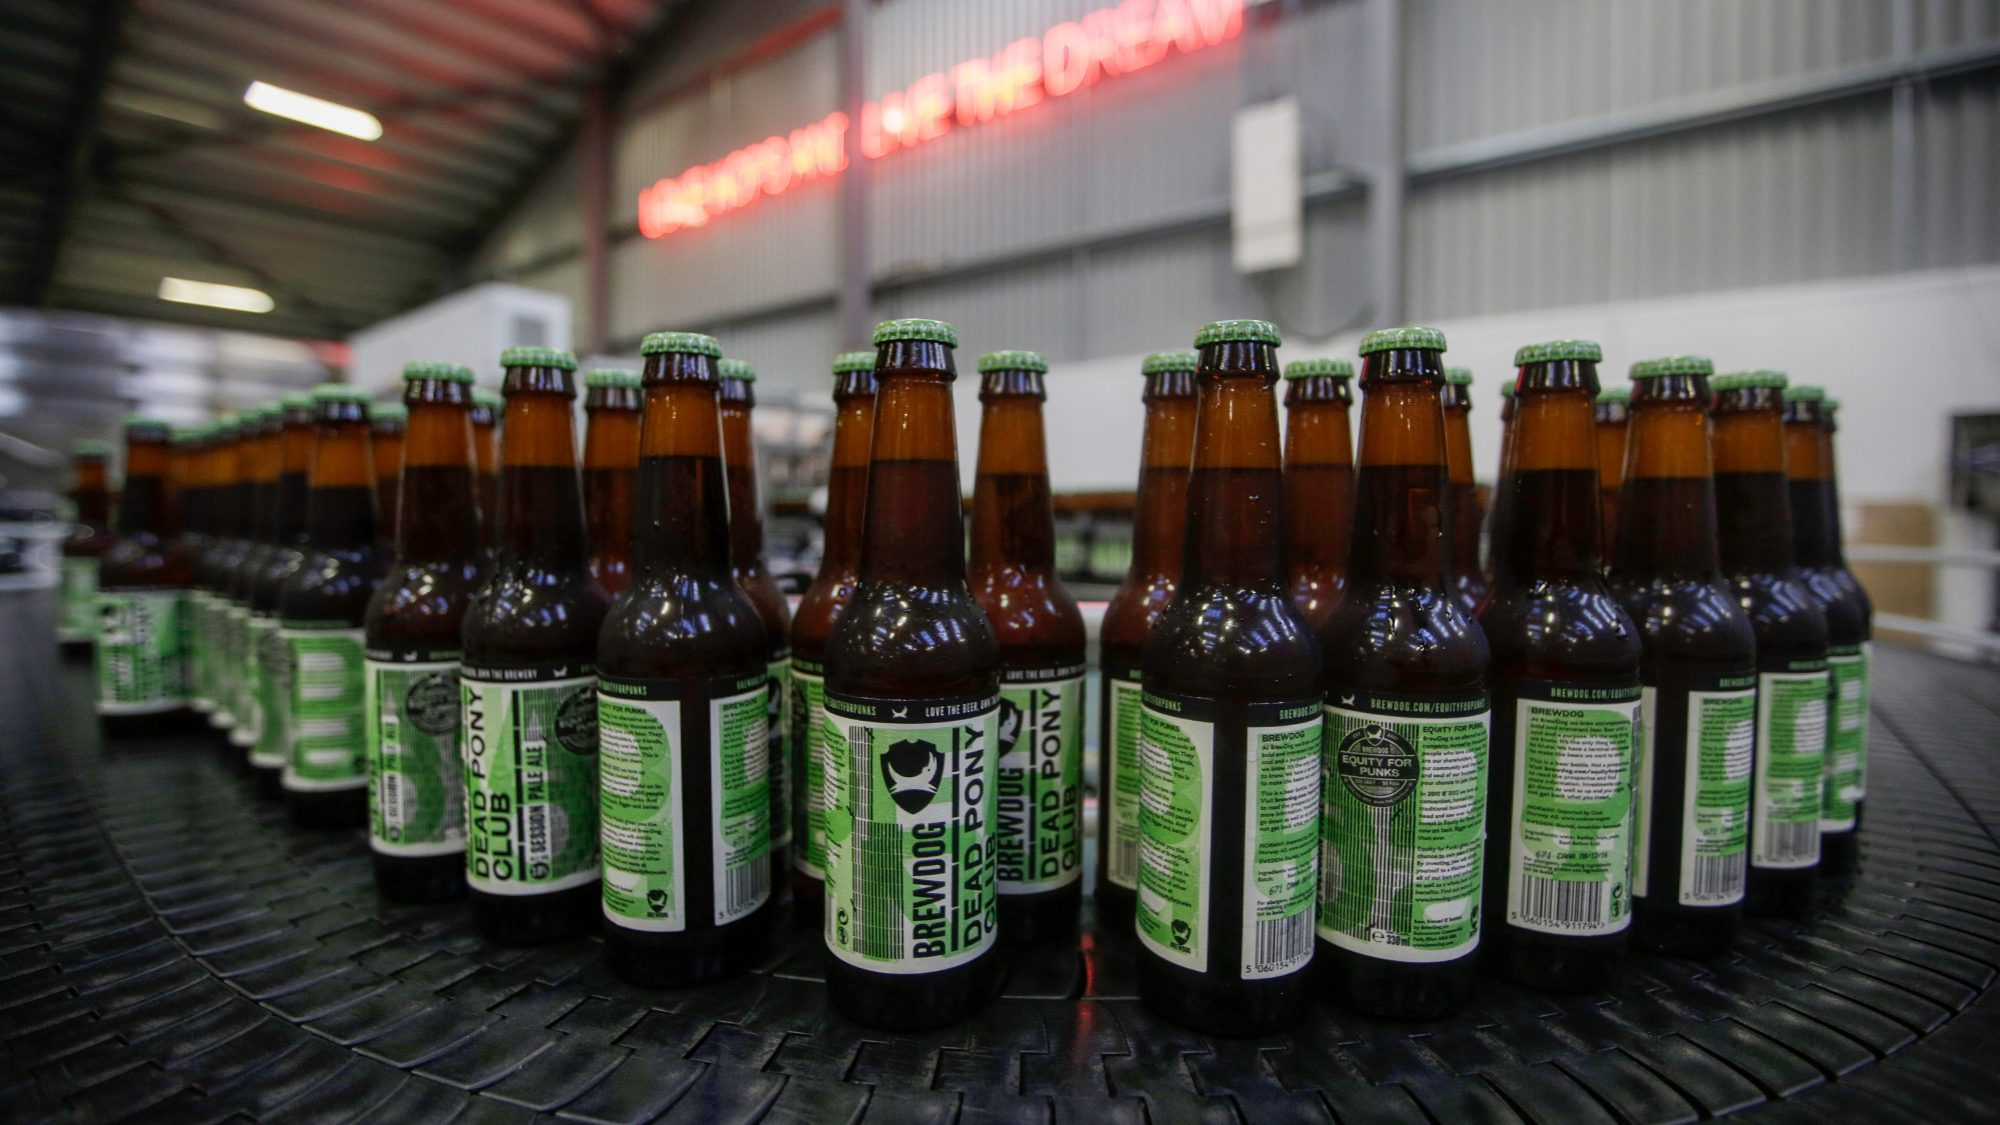 Capped bottles of Brewdog Dead Pony Pale Ale